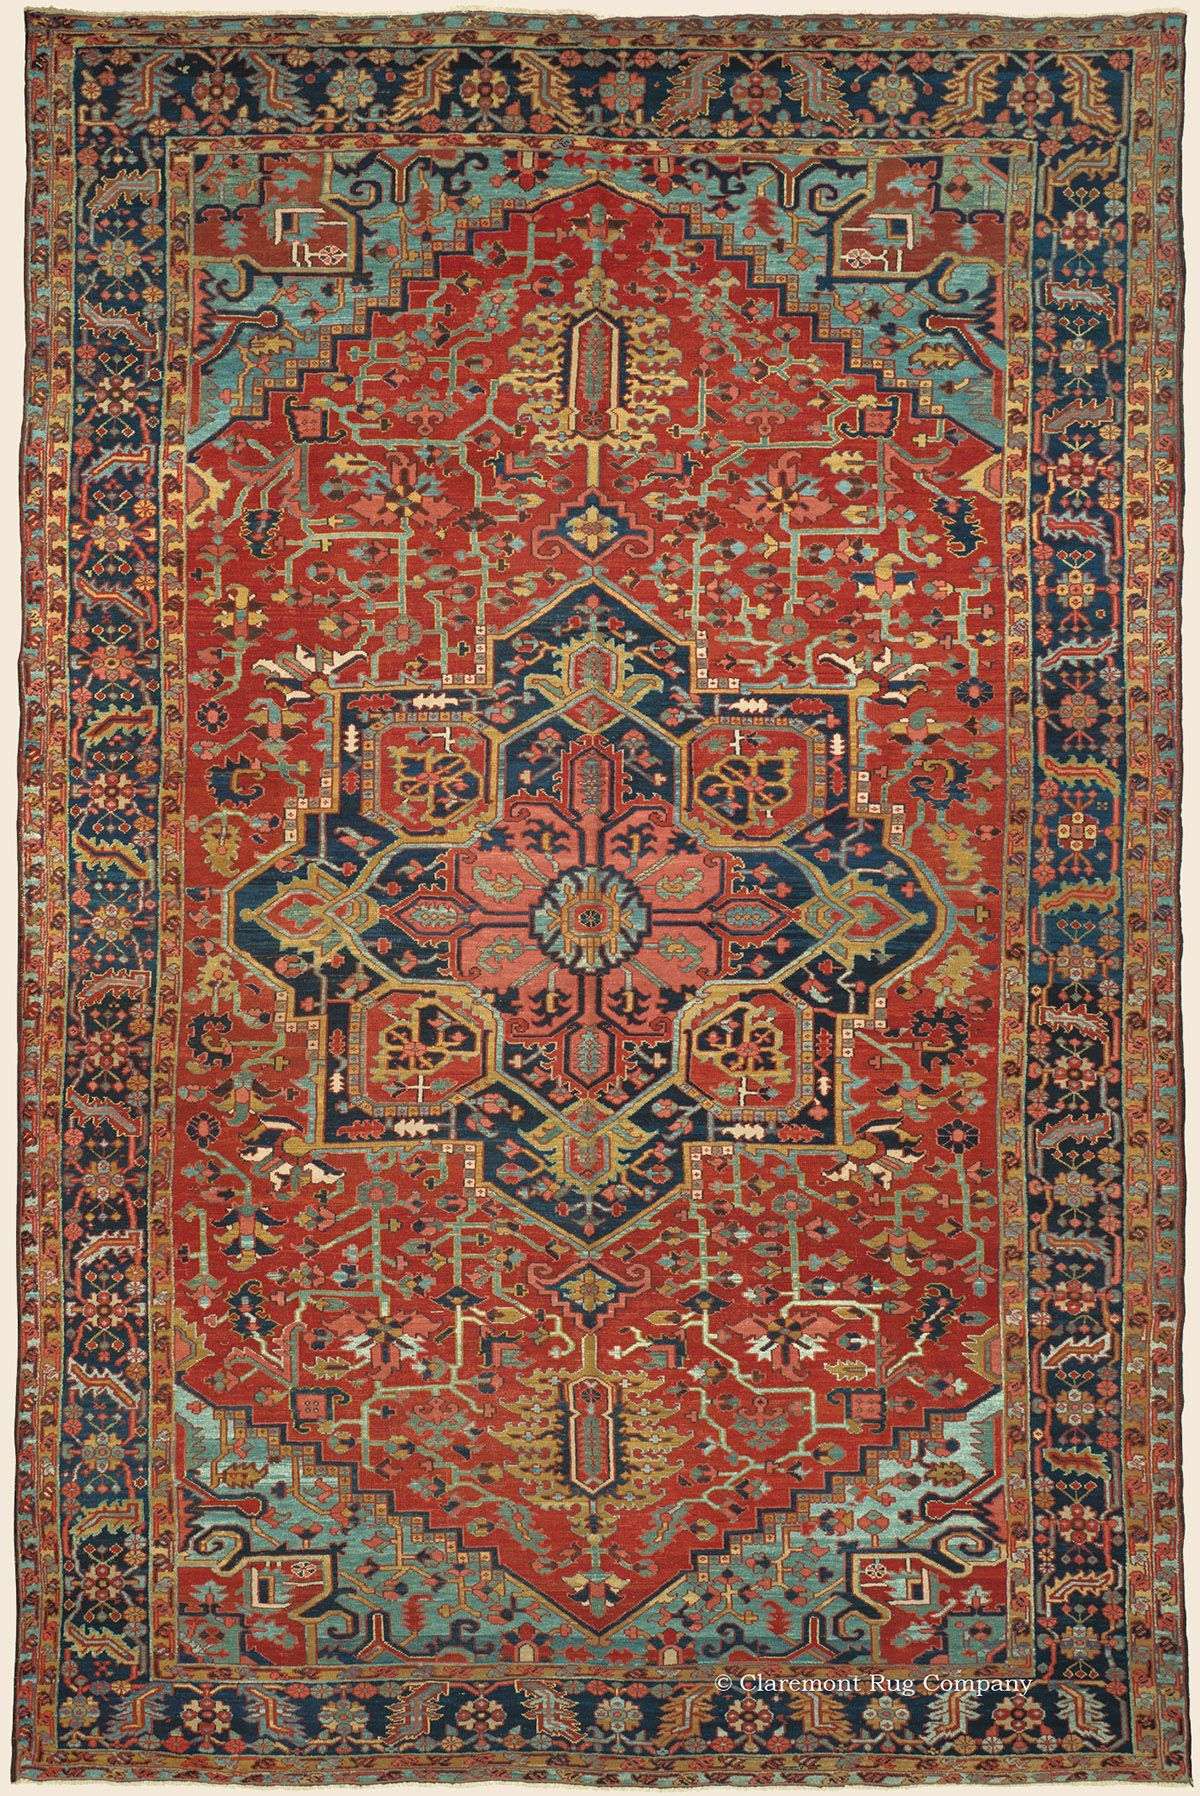 Heriz 11 10 X 18 2 Circa 1900 Northwest Persian Antique Rug Claremont Company Click To Learn More About This Orientalrugs